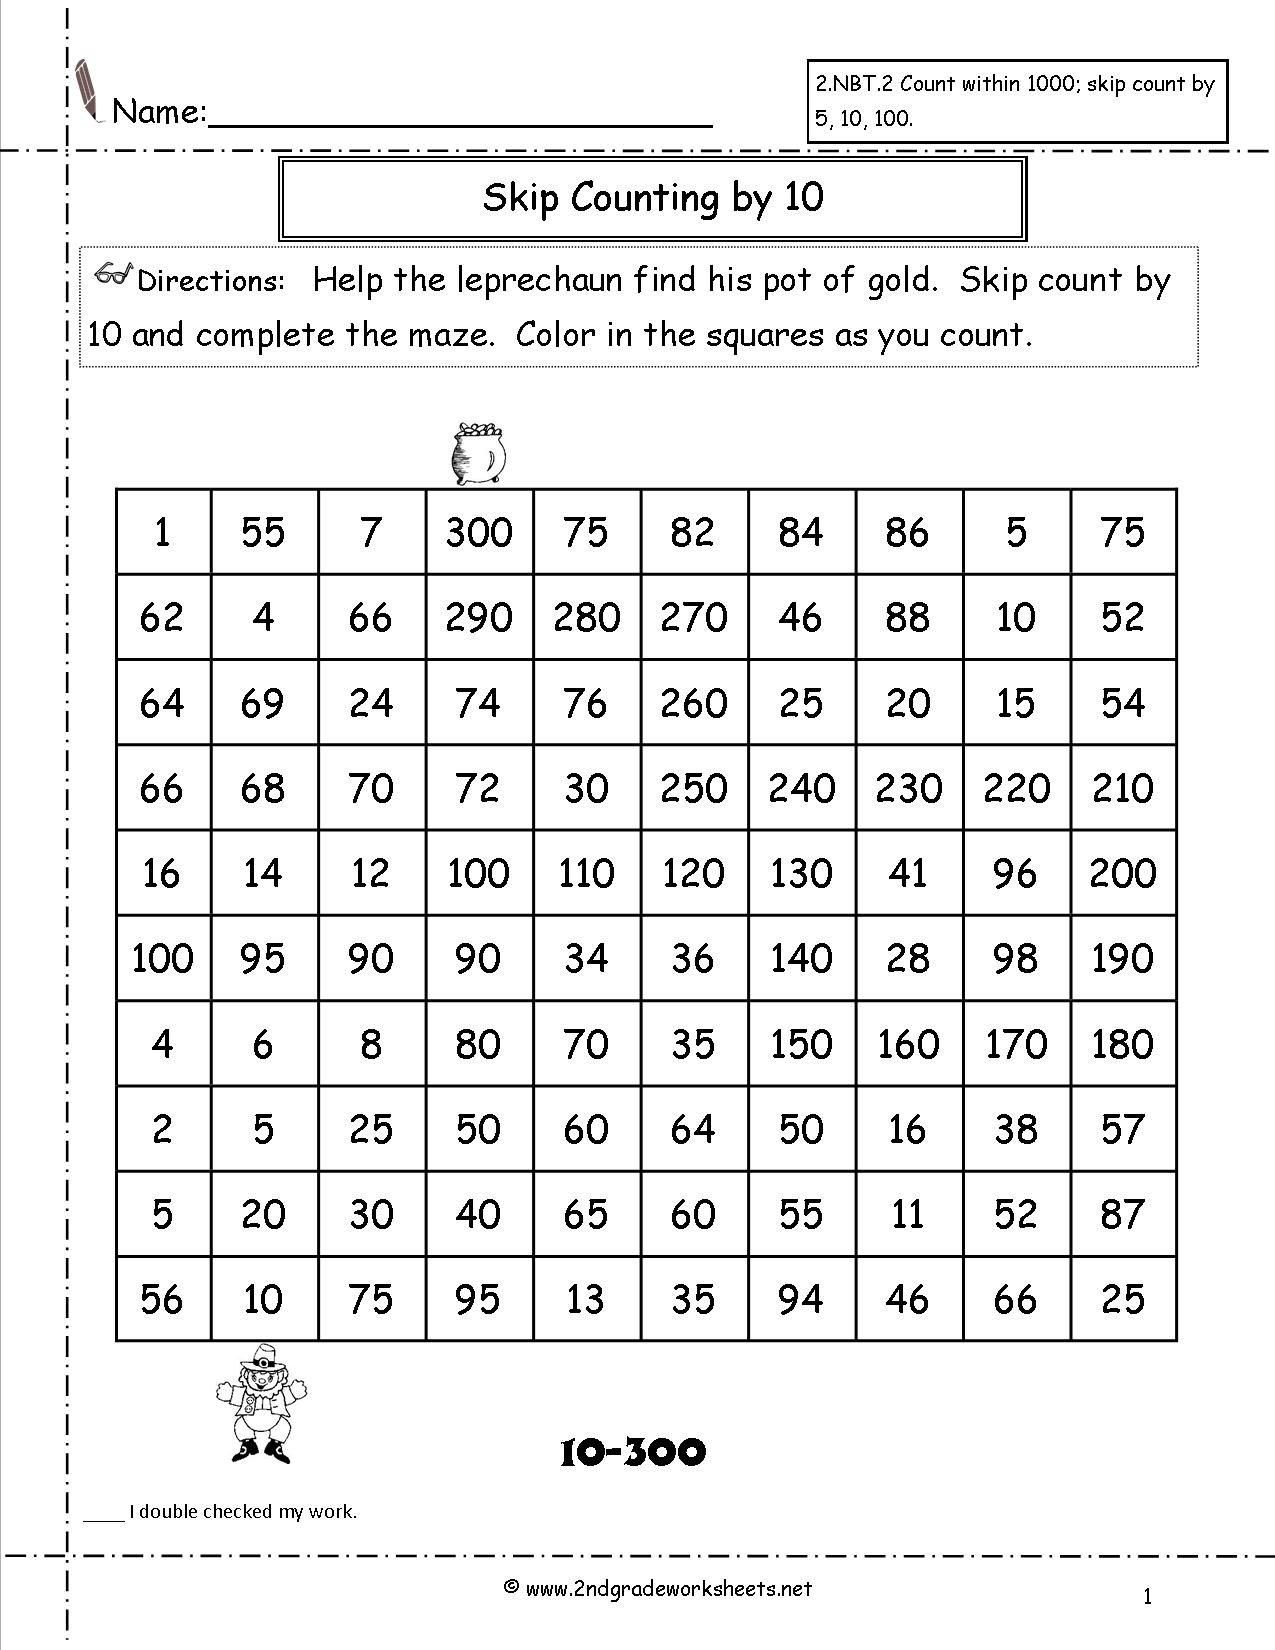 skip counting by 10 maze worksheet math pinterest skip counting math worksheets and. Black Bedroom Furniture Sets. Home Design Ideas